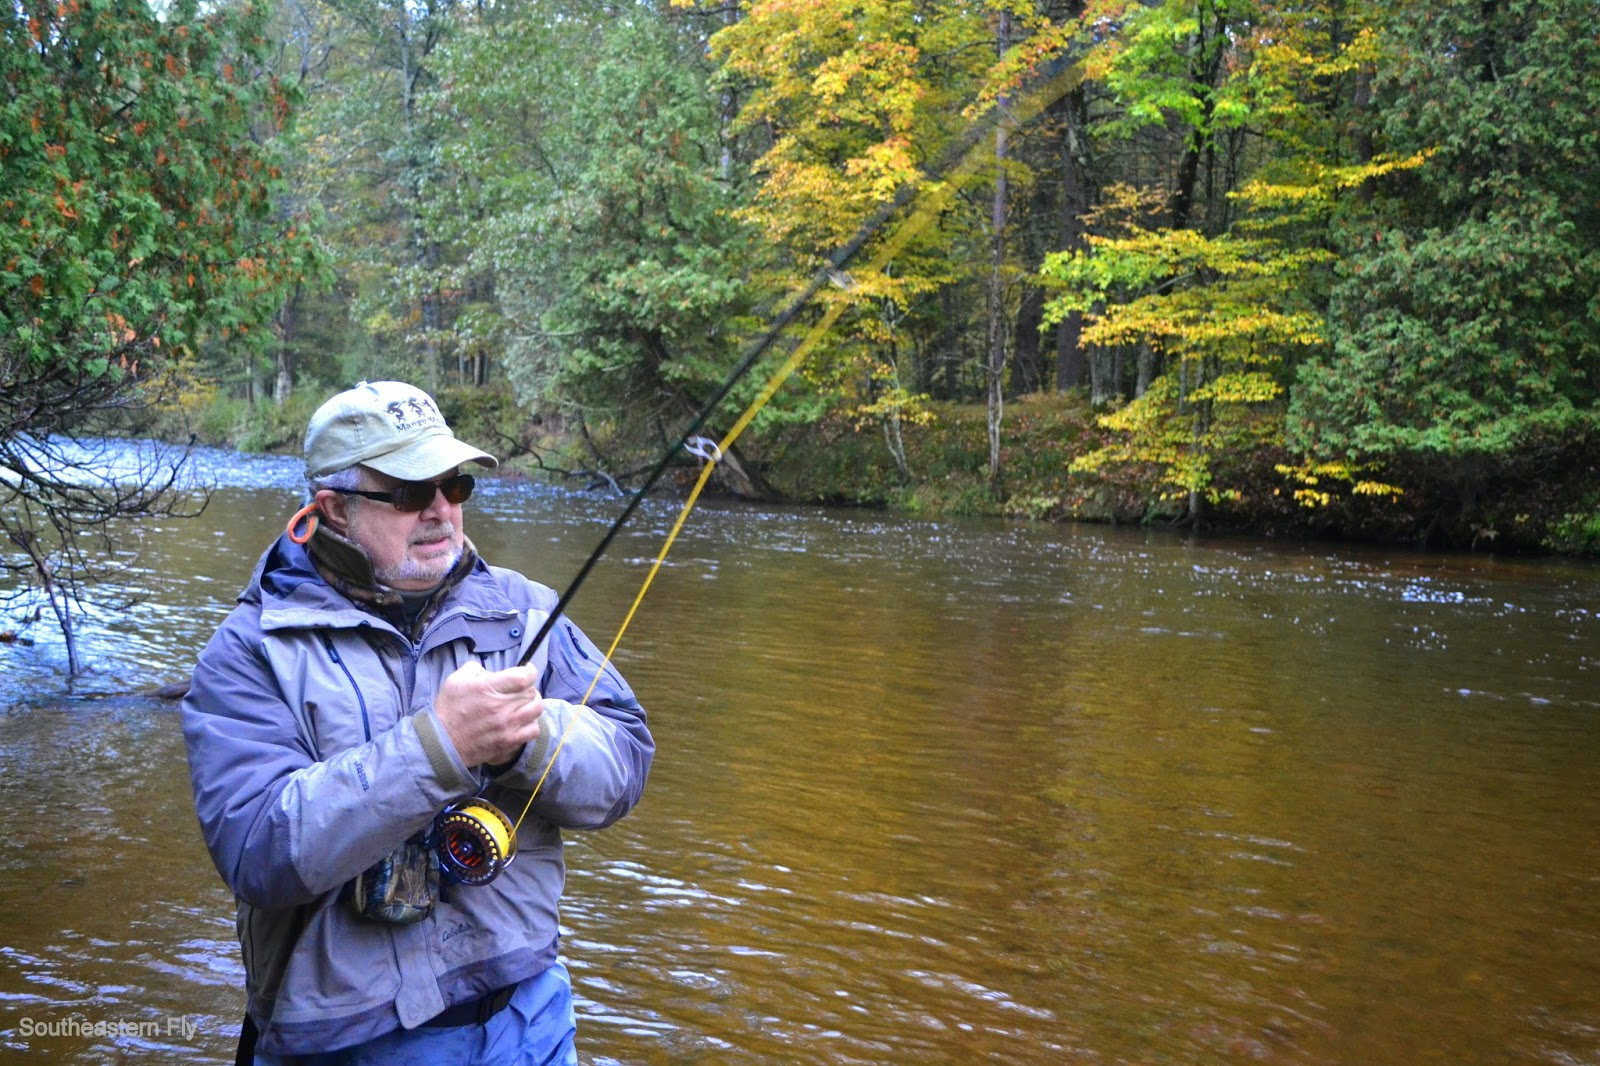 Southeastern fly fly fish michigan for Fly fishing michigan